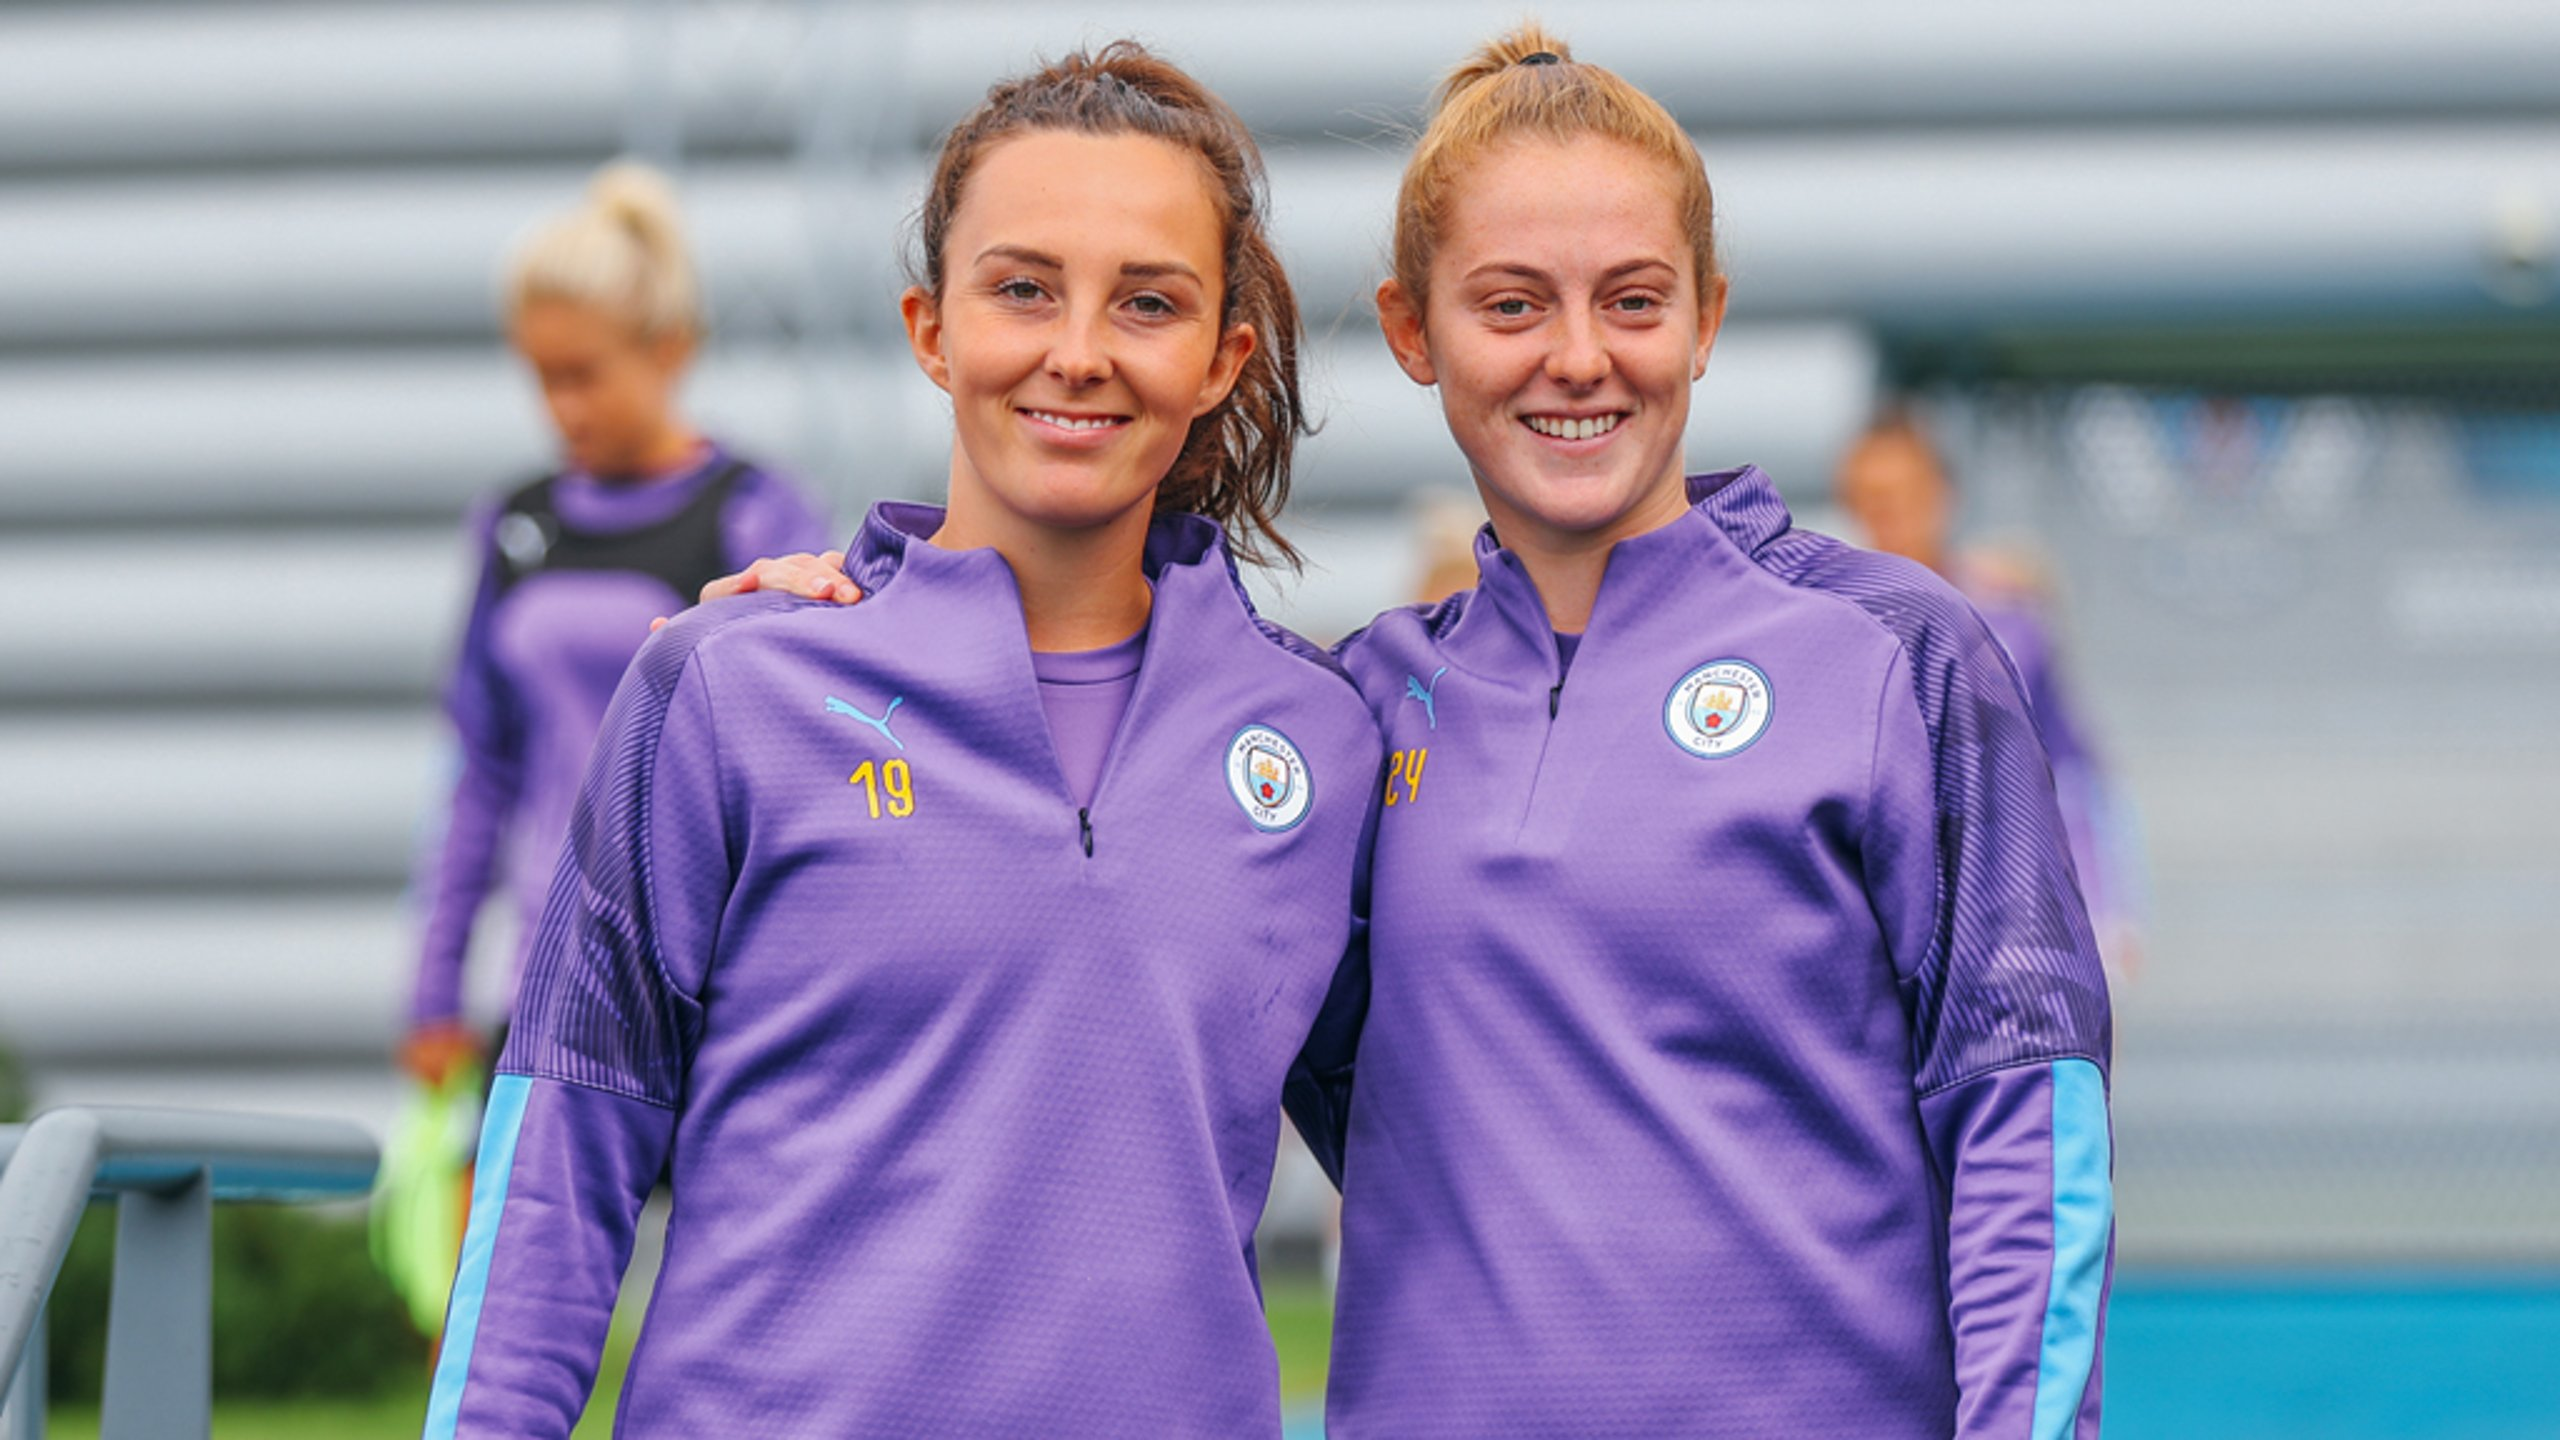 GOOD TO BE BACK: All smiles for Caroline Weir and Keira Walsh